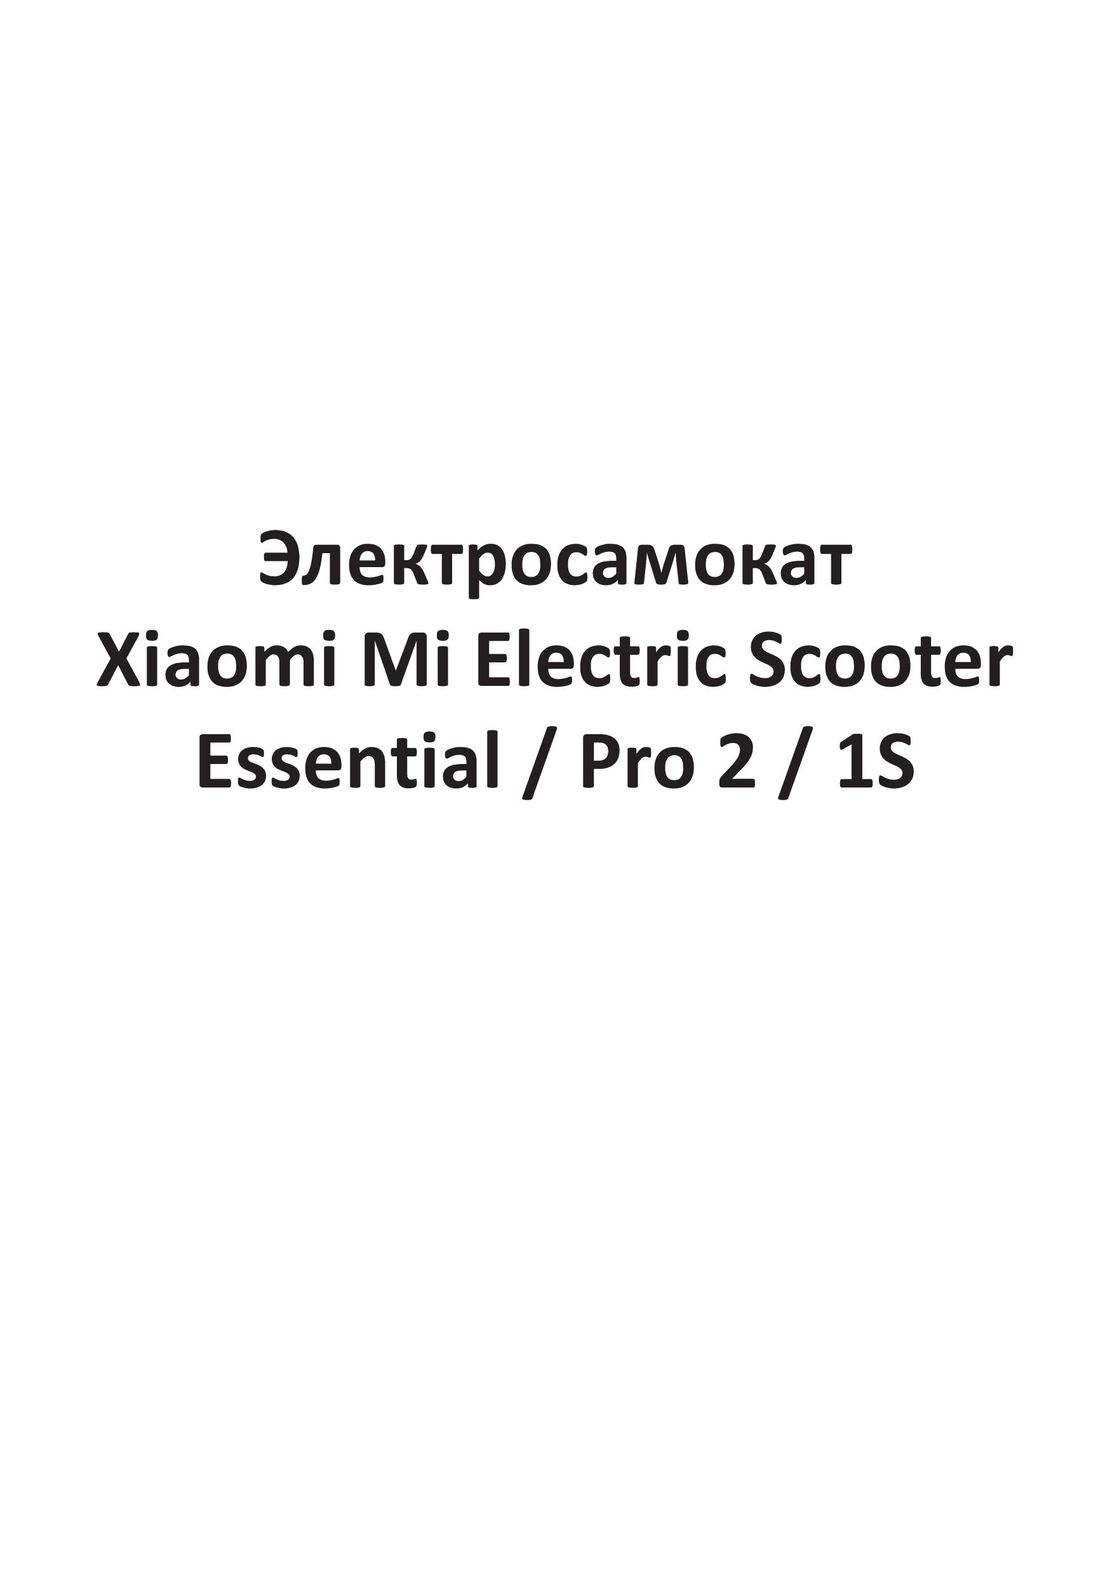 Xiaomi Mi Electric Scooter 1S инструкция на русском